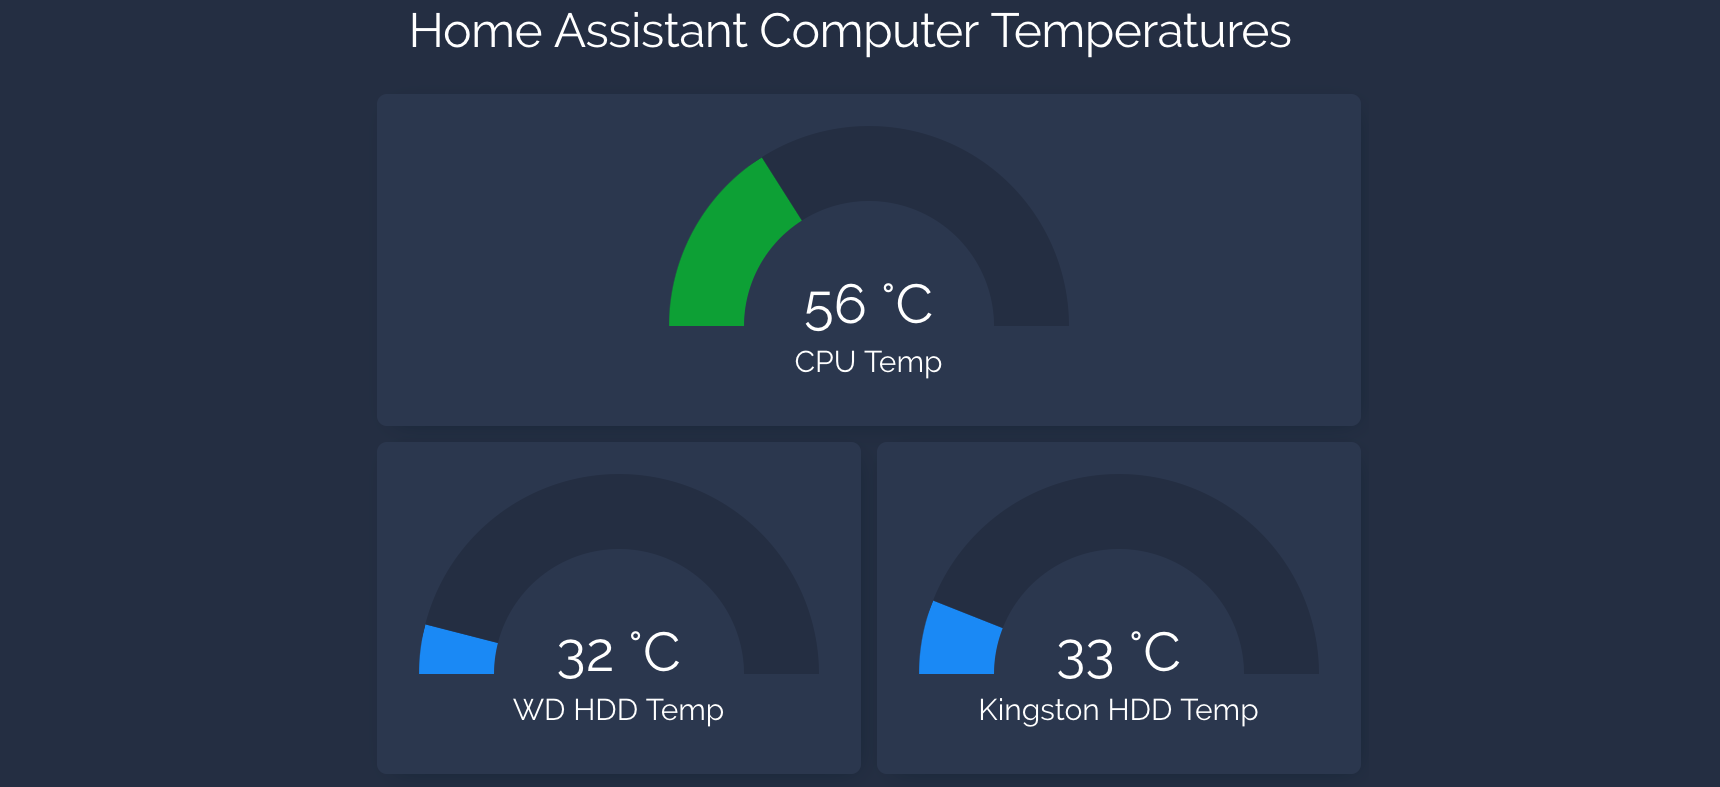 Lovelace Dashboard in Home Assistant showing CPU, HDD and SDD temperatures